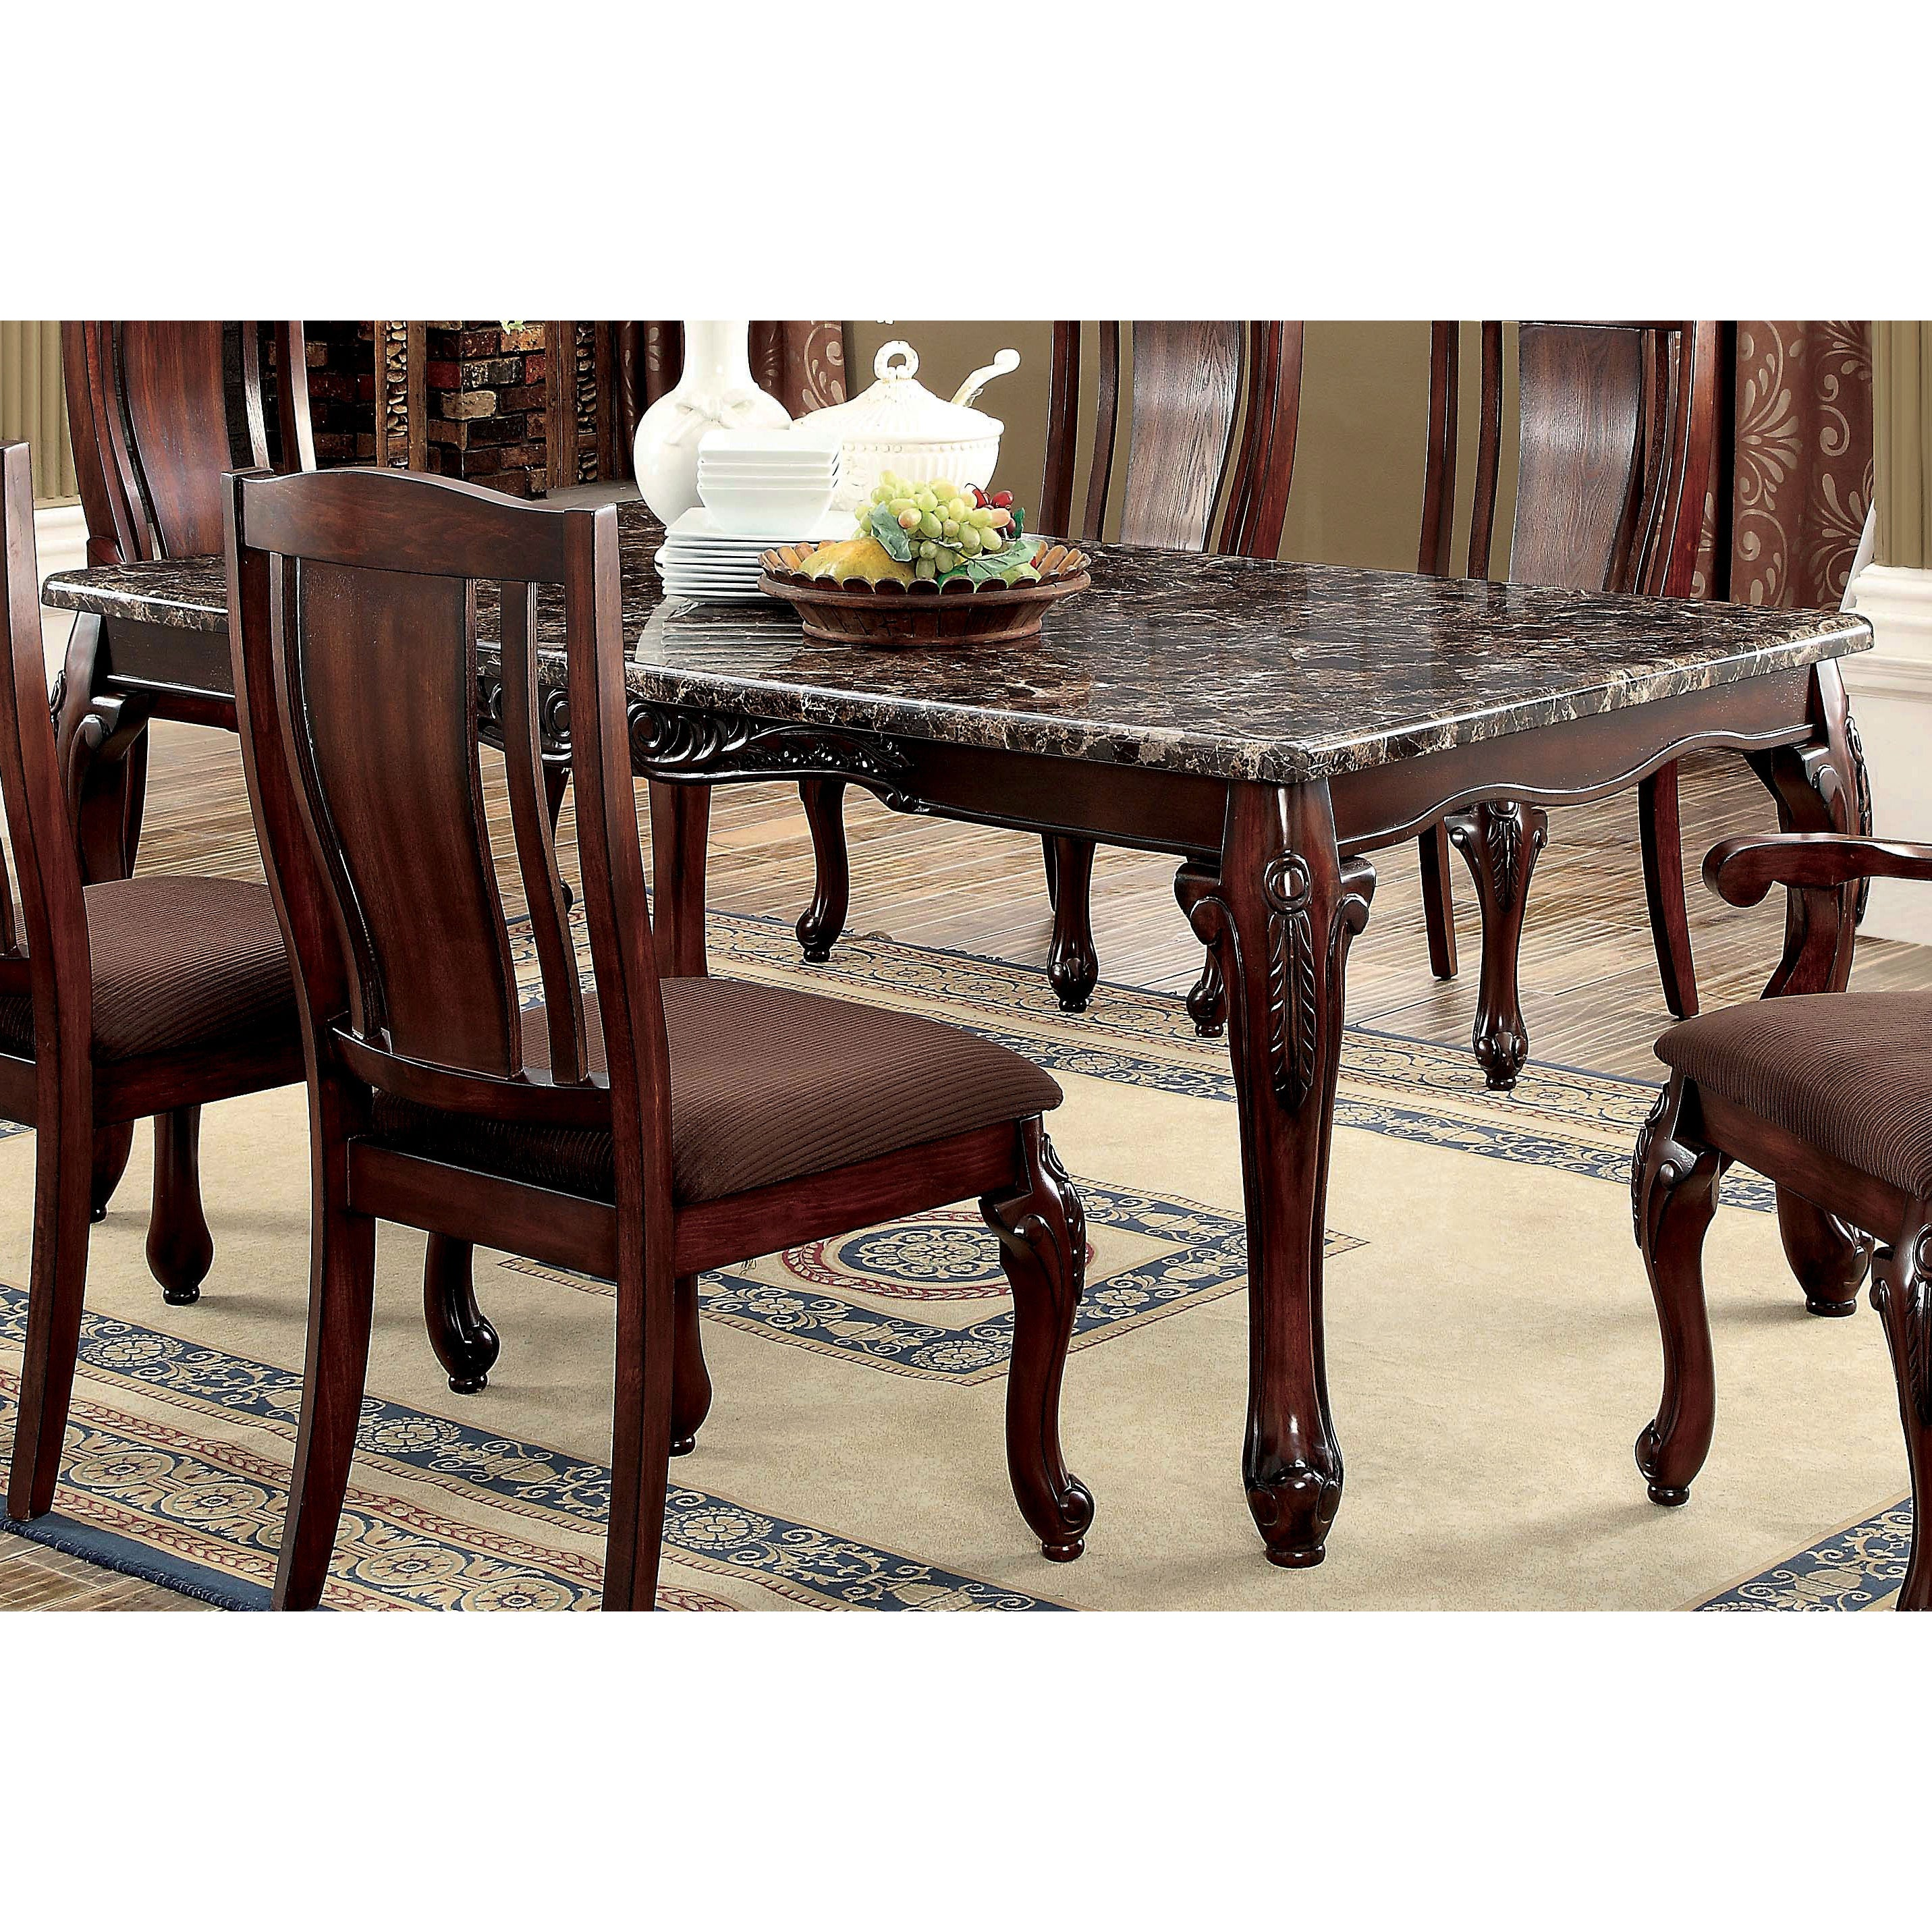 Furniture of America Kath Traditional Cherry 72-inch Dining Table - Cherry  Brown